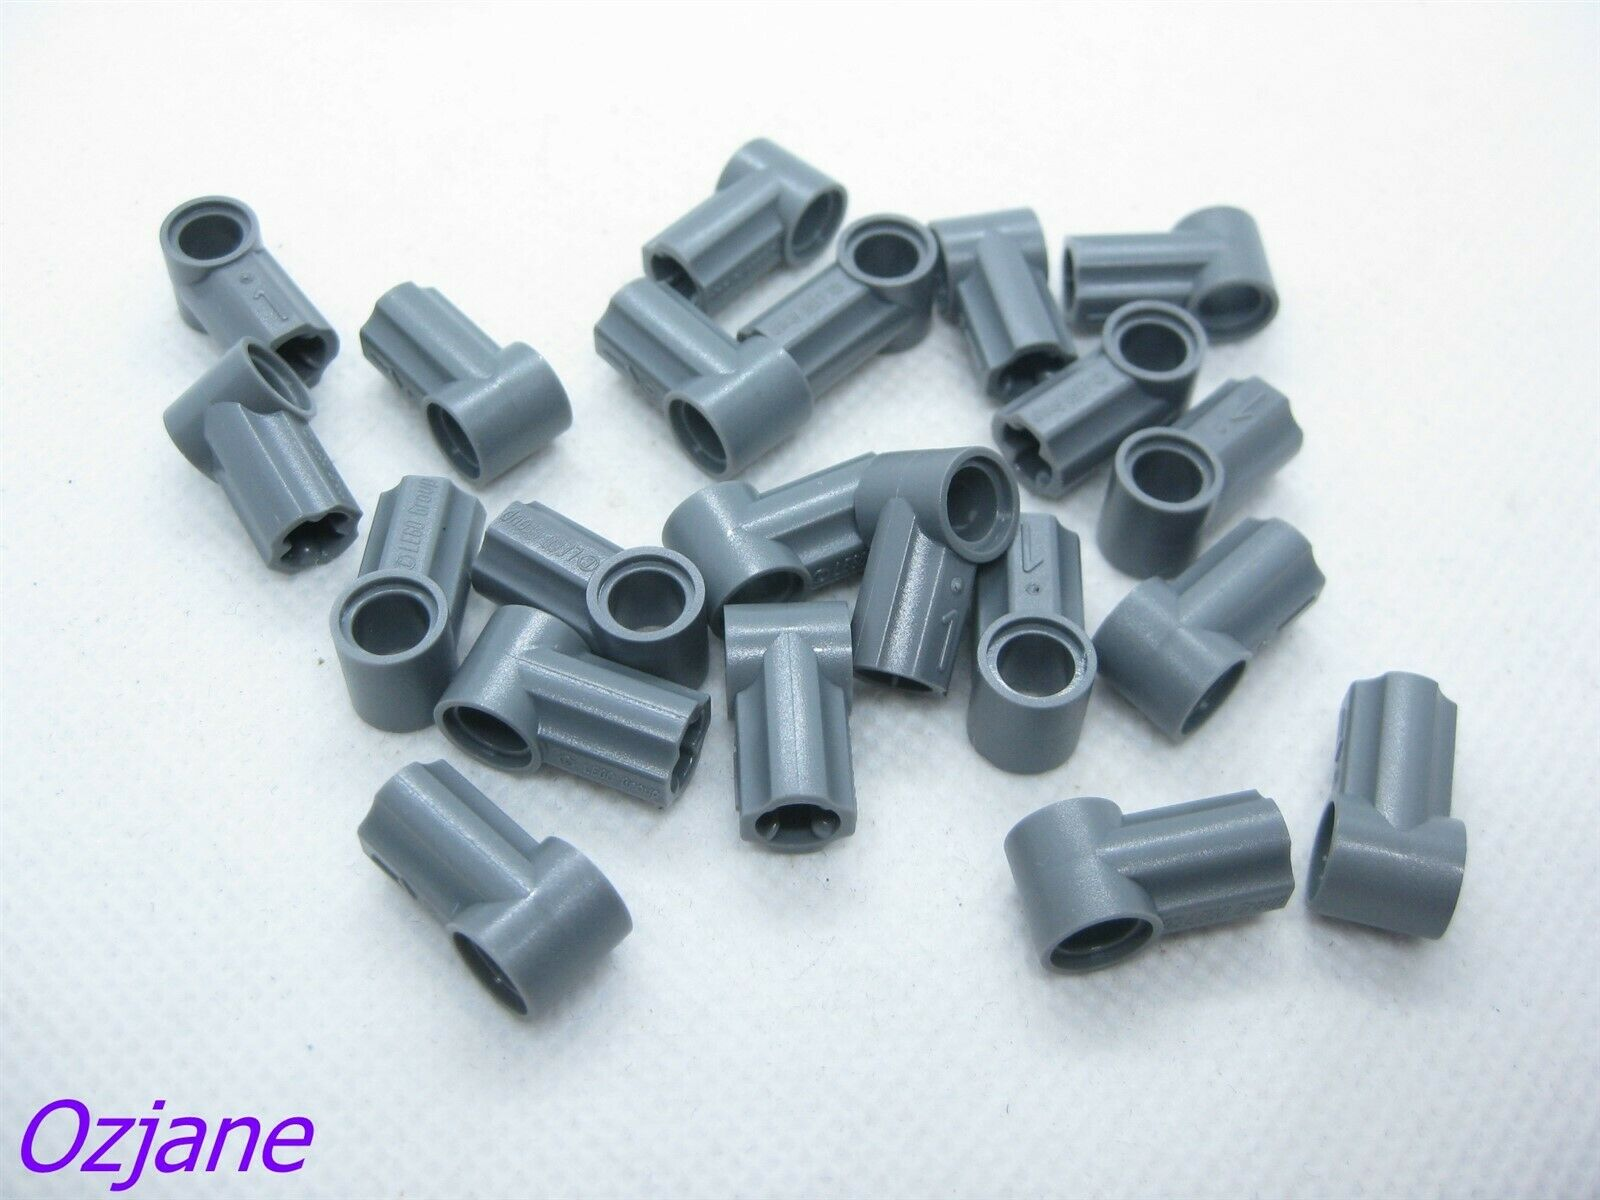 Pack of 4 Axle and Pin Connector 32184 LIGHT BLUISH GREY LEGO Parts NEW